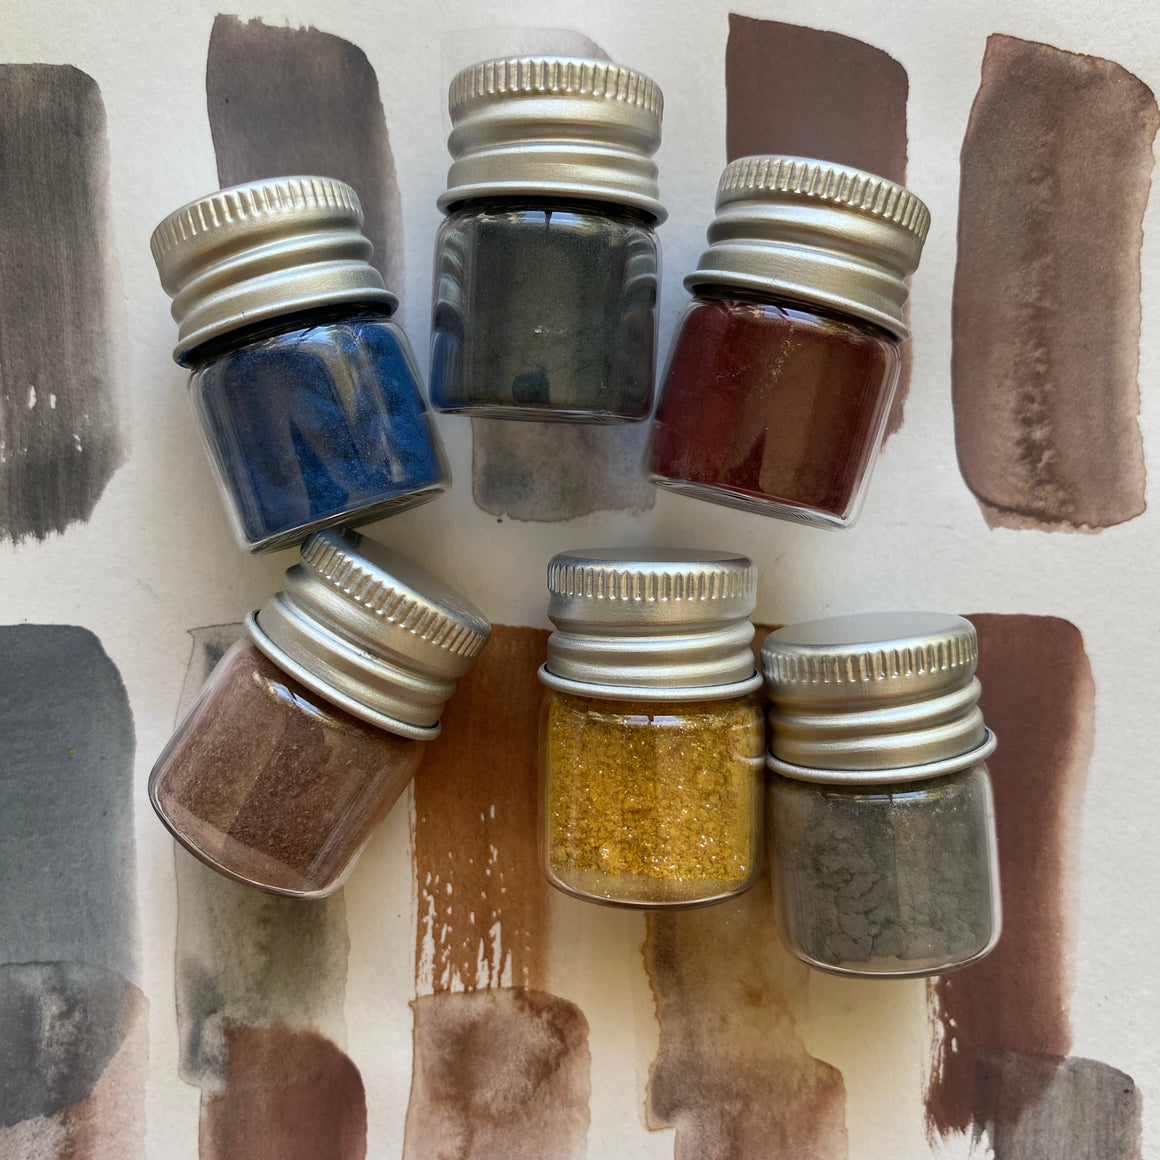 SHADES of LOVE hand-mixed #tracibautistaCOLOR pigment kit + paint making workshop